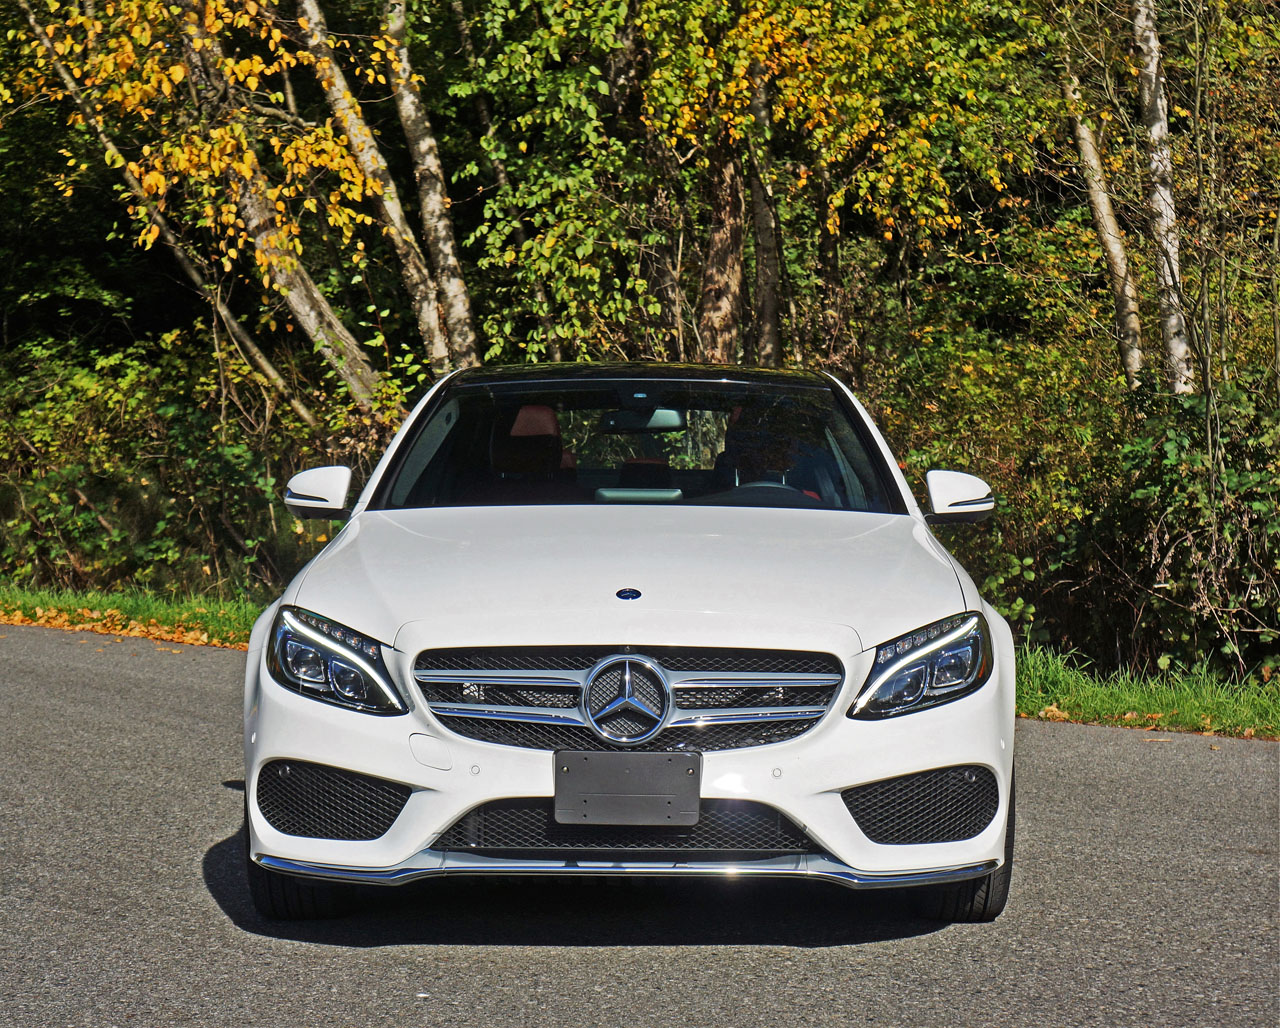 2016 mercedes benz c300 4matic sedan road test review for Mercedes benz 4matic meaning